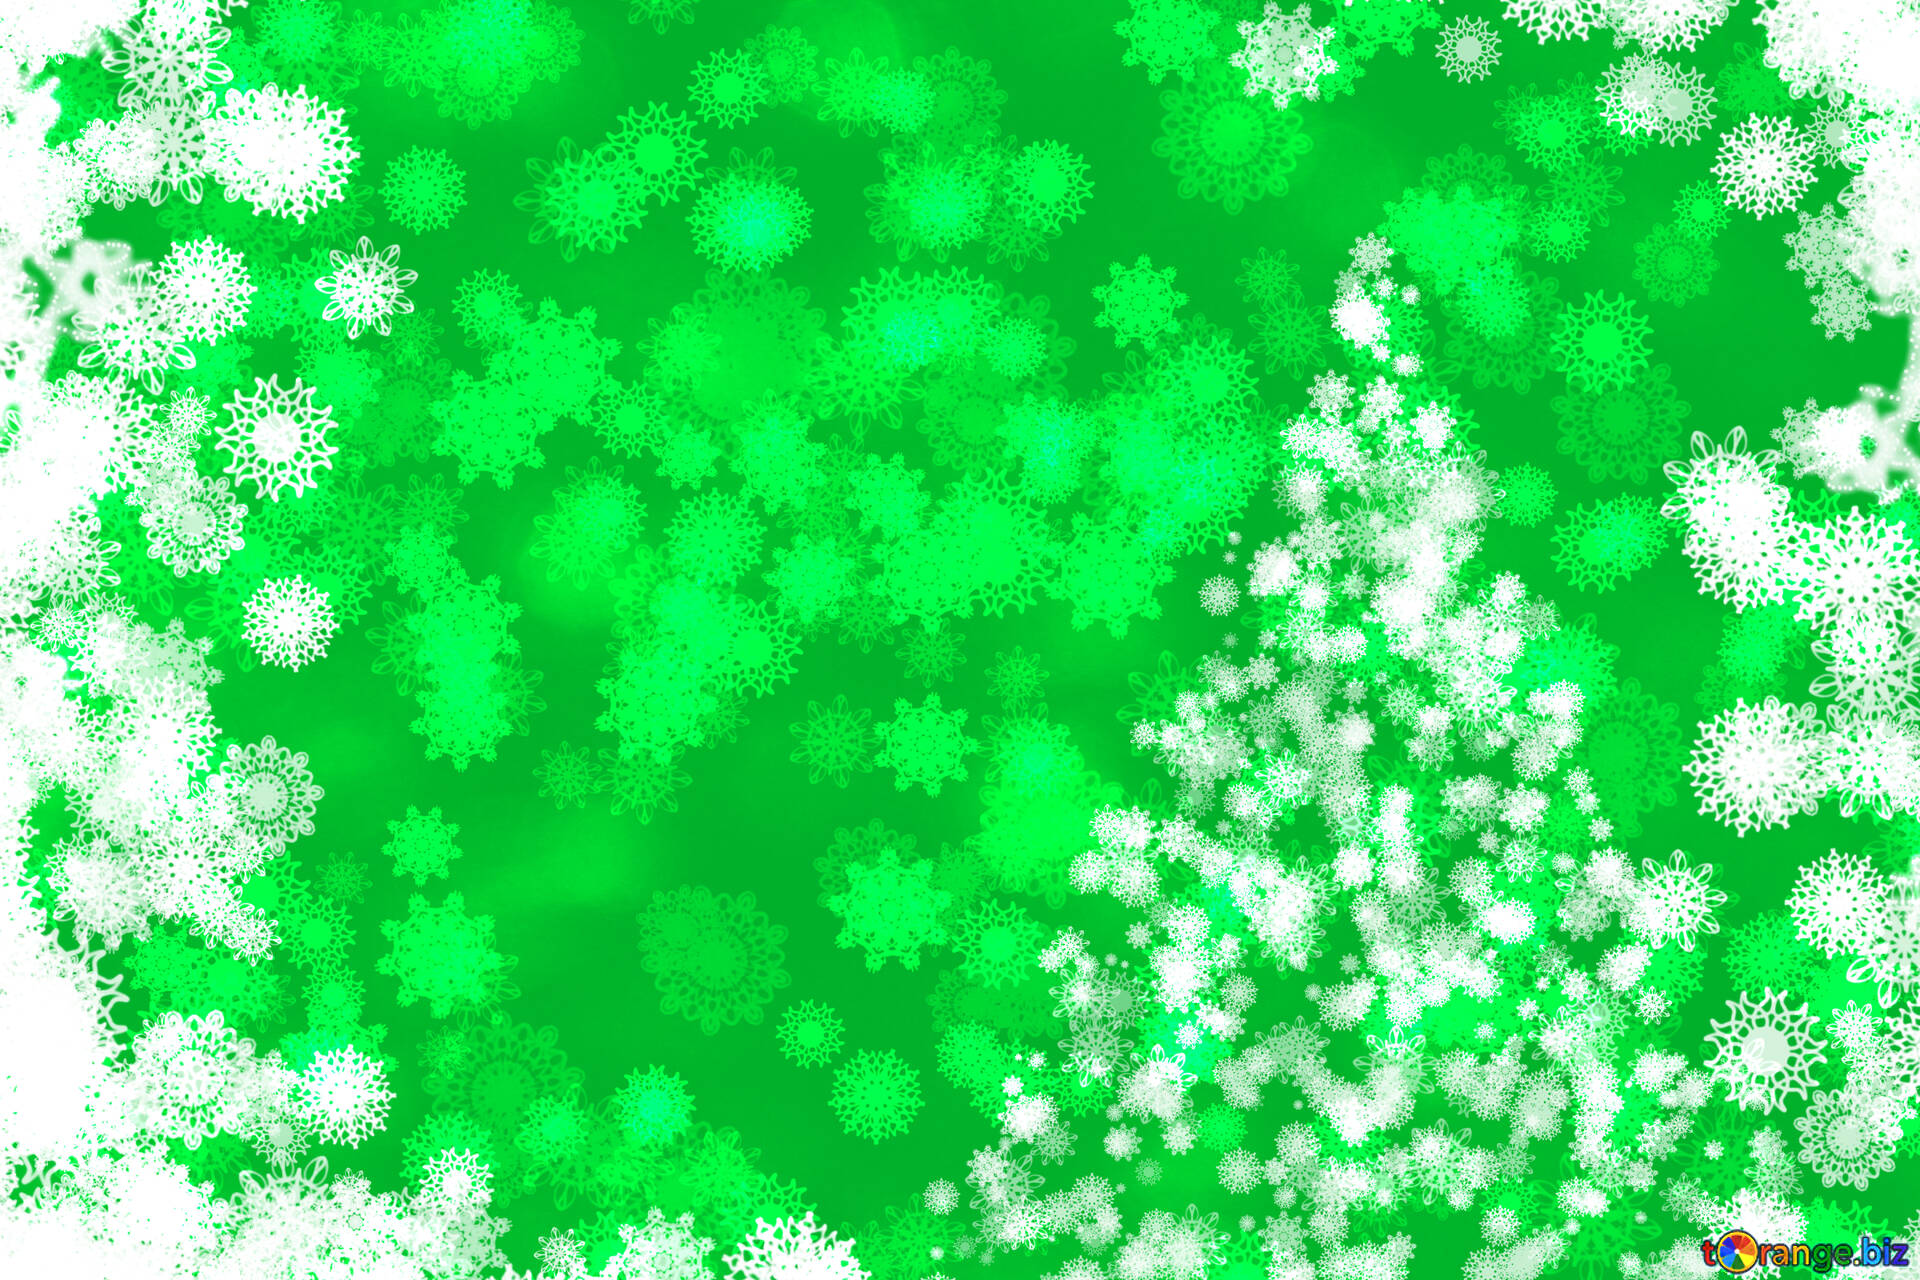 download free image green tree background christmas and new year in hd wallpaper size 1920px